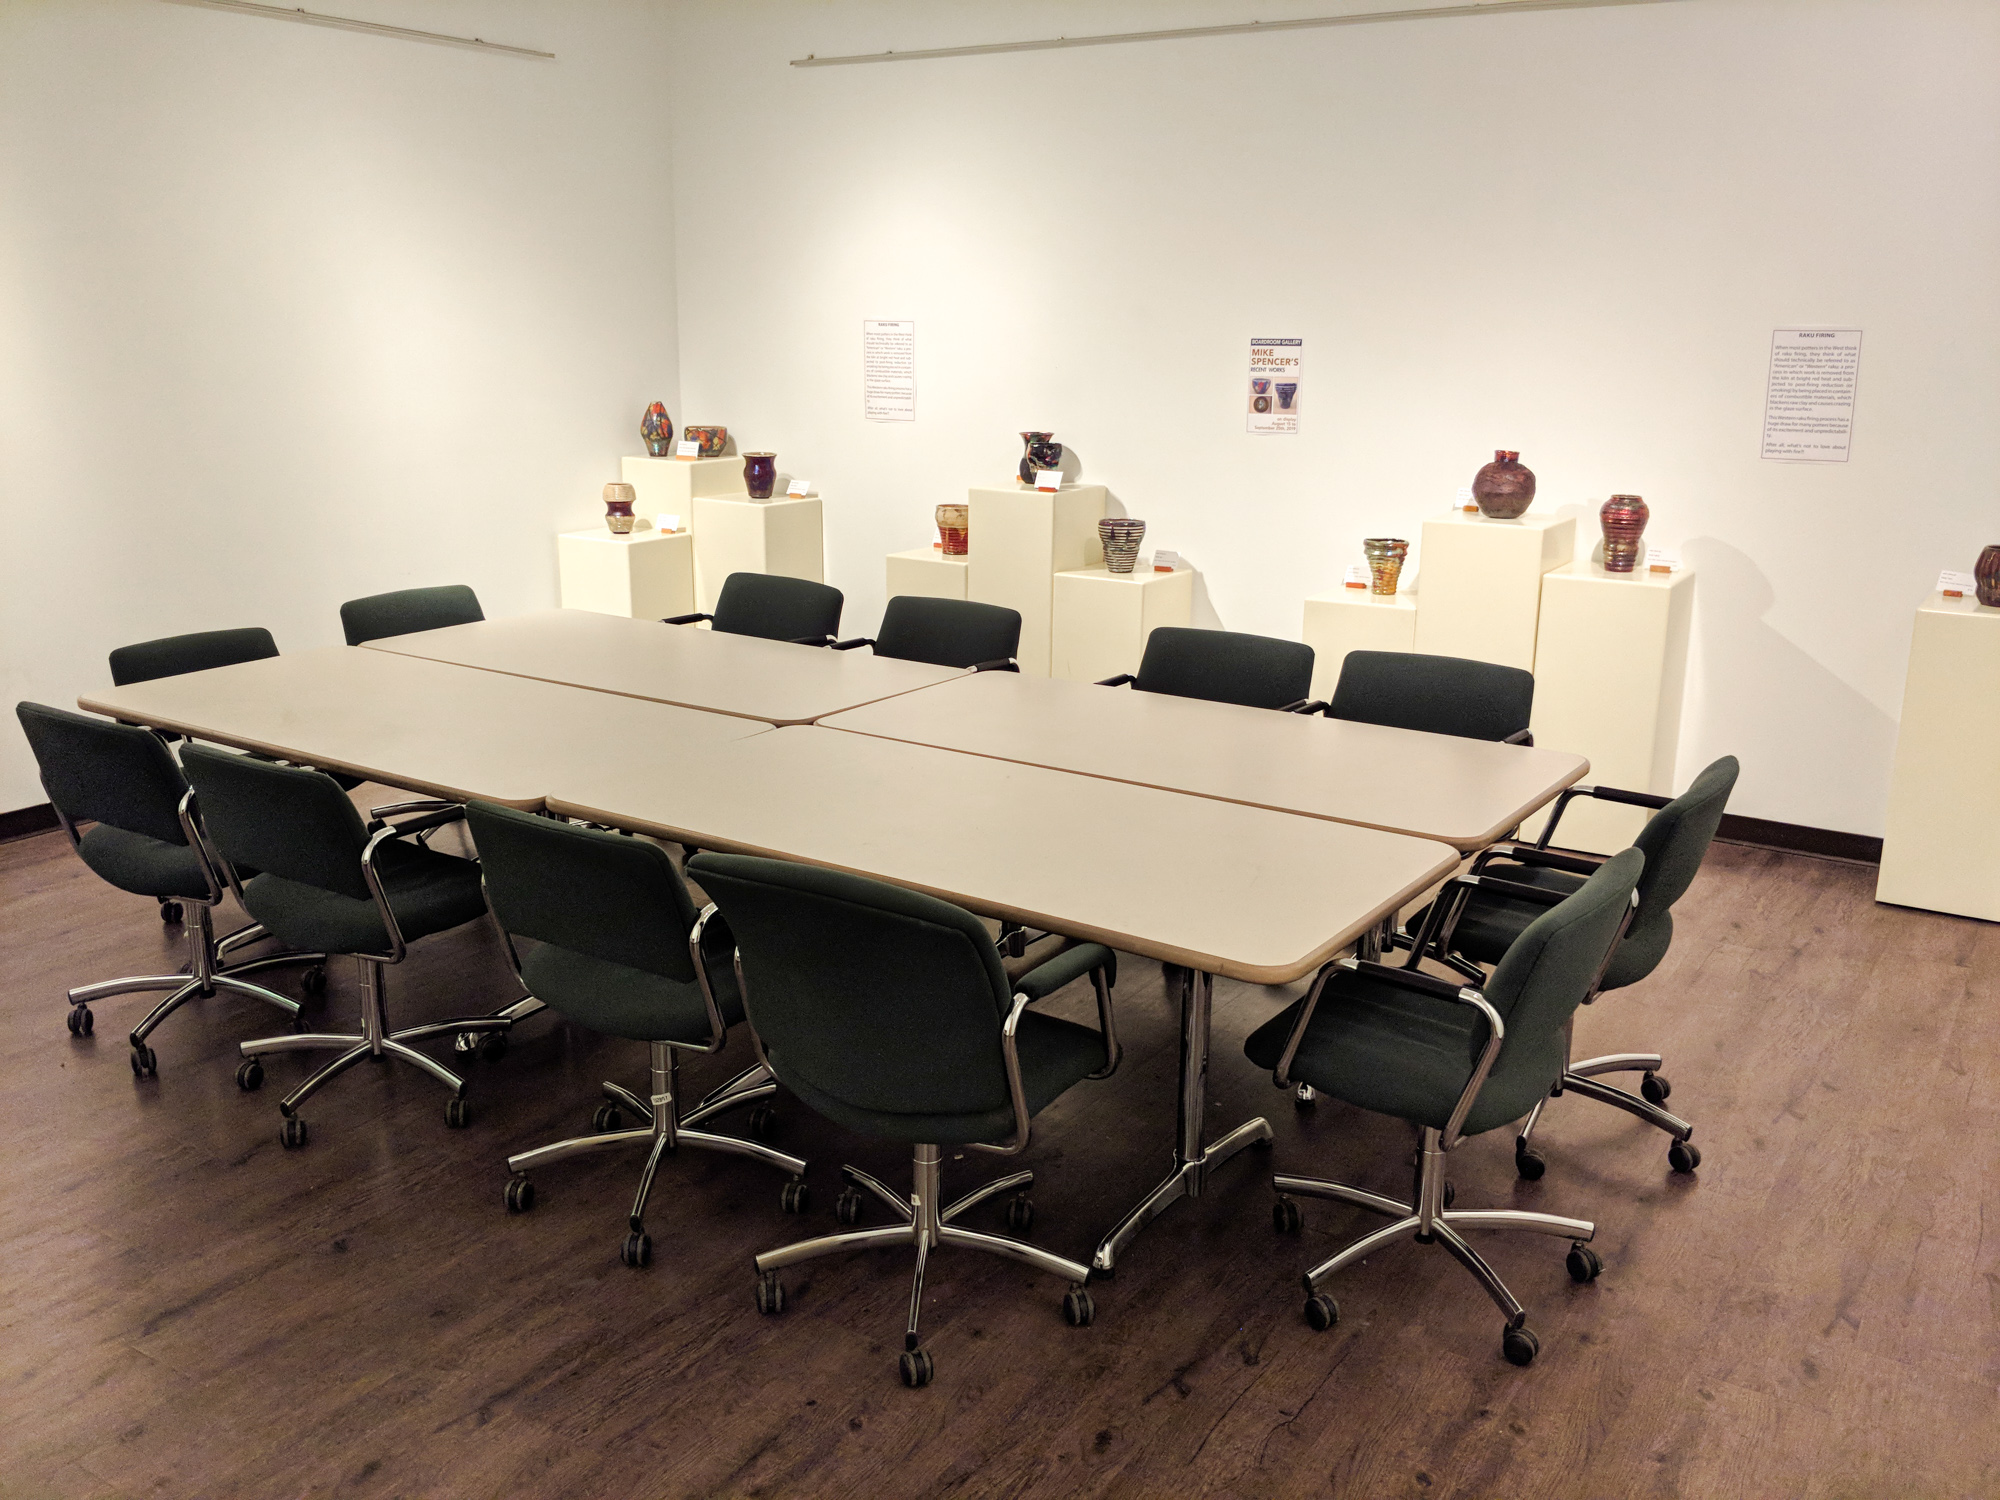 Boardroom Gallery - The Boardroom Gallery features artwork by local artists every few months in an intimate setting. The gallery has a conference table with seating for 12.